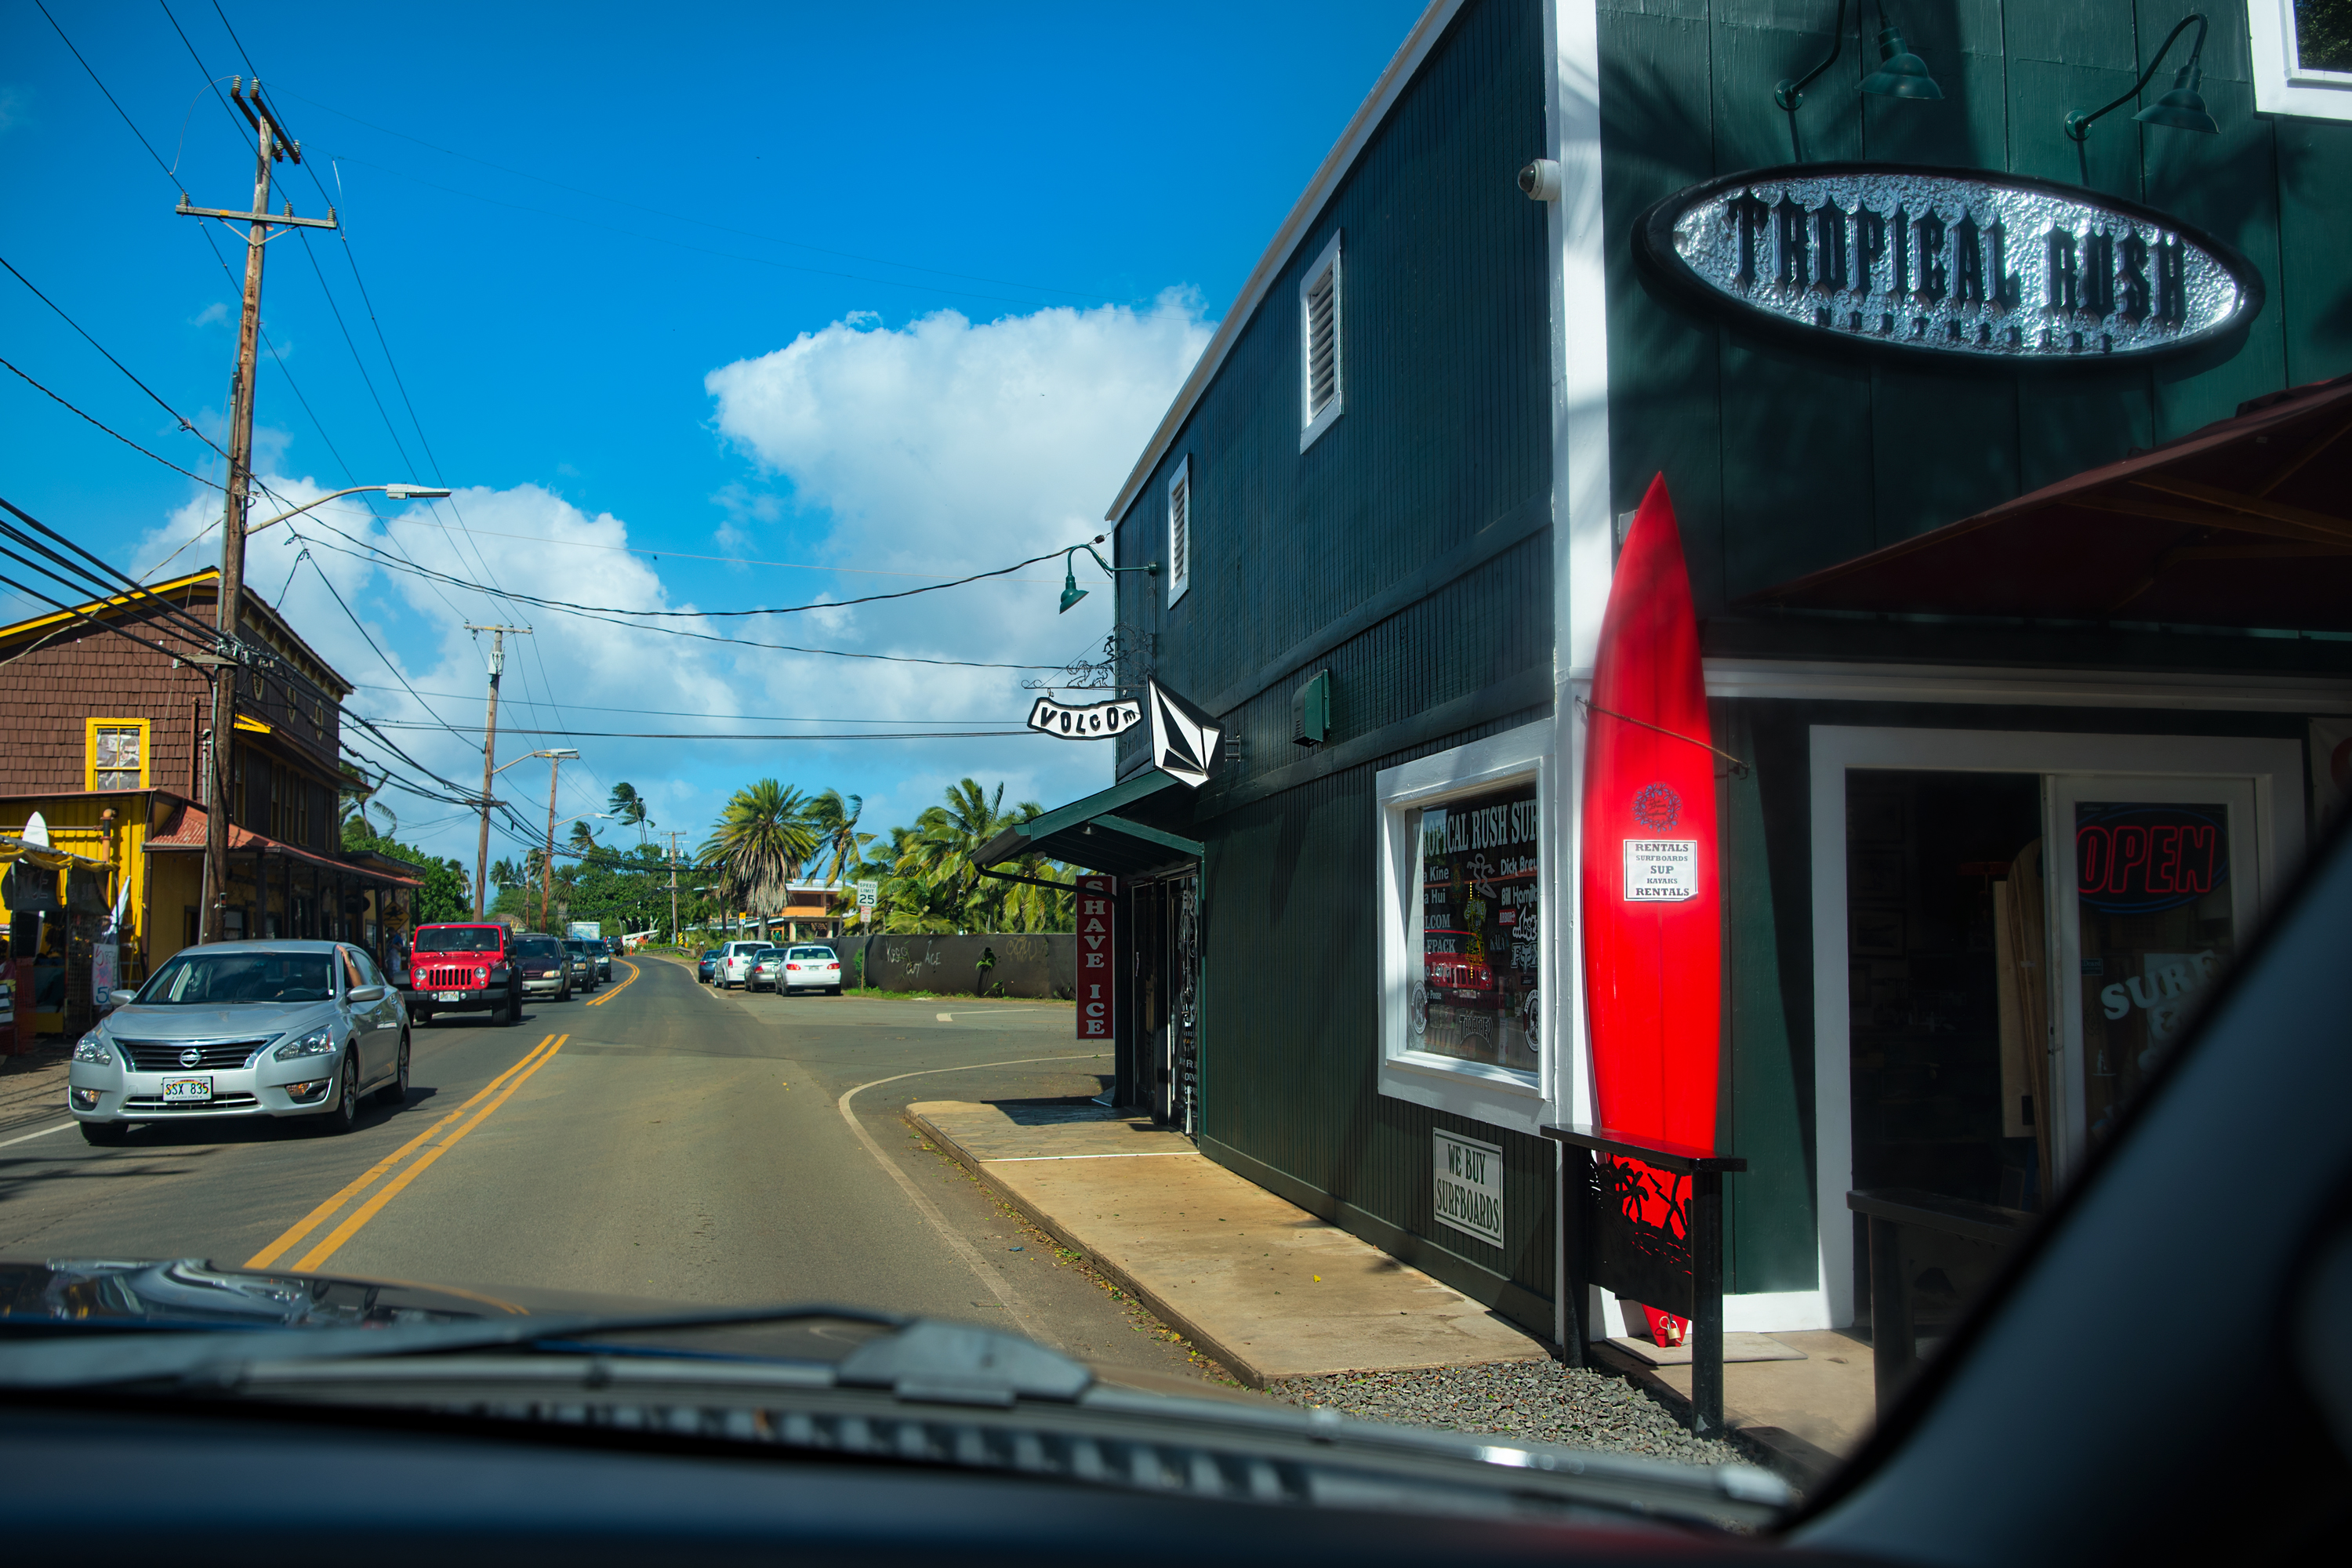 Surfshop in Haleiwa